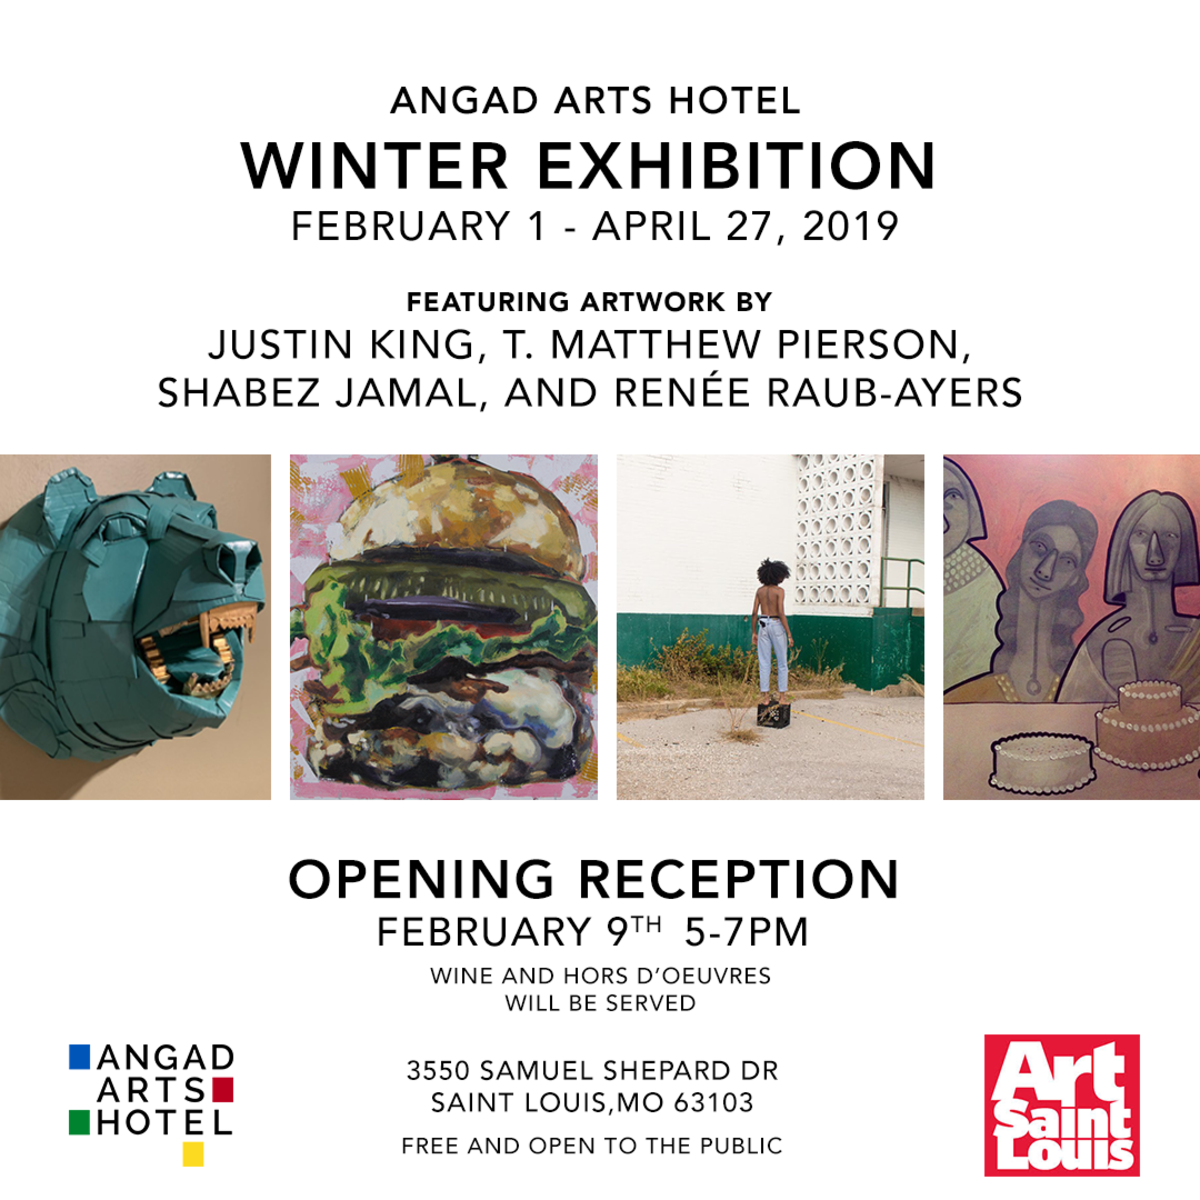 aah-winter-exhibiton_1080x1080_revised